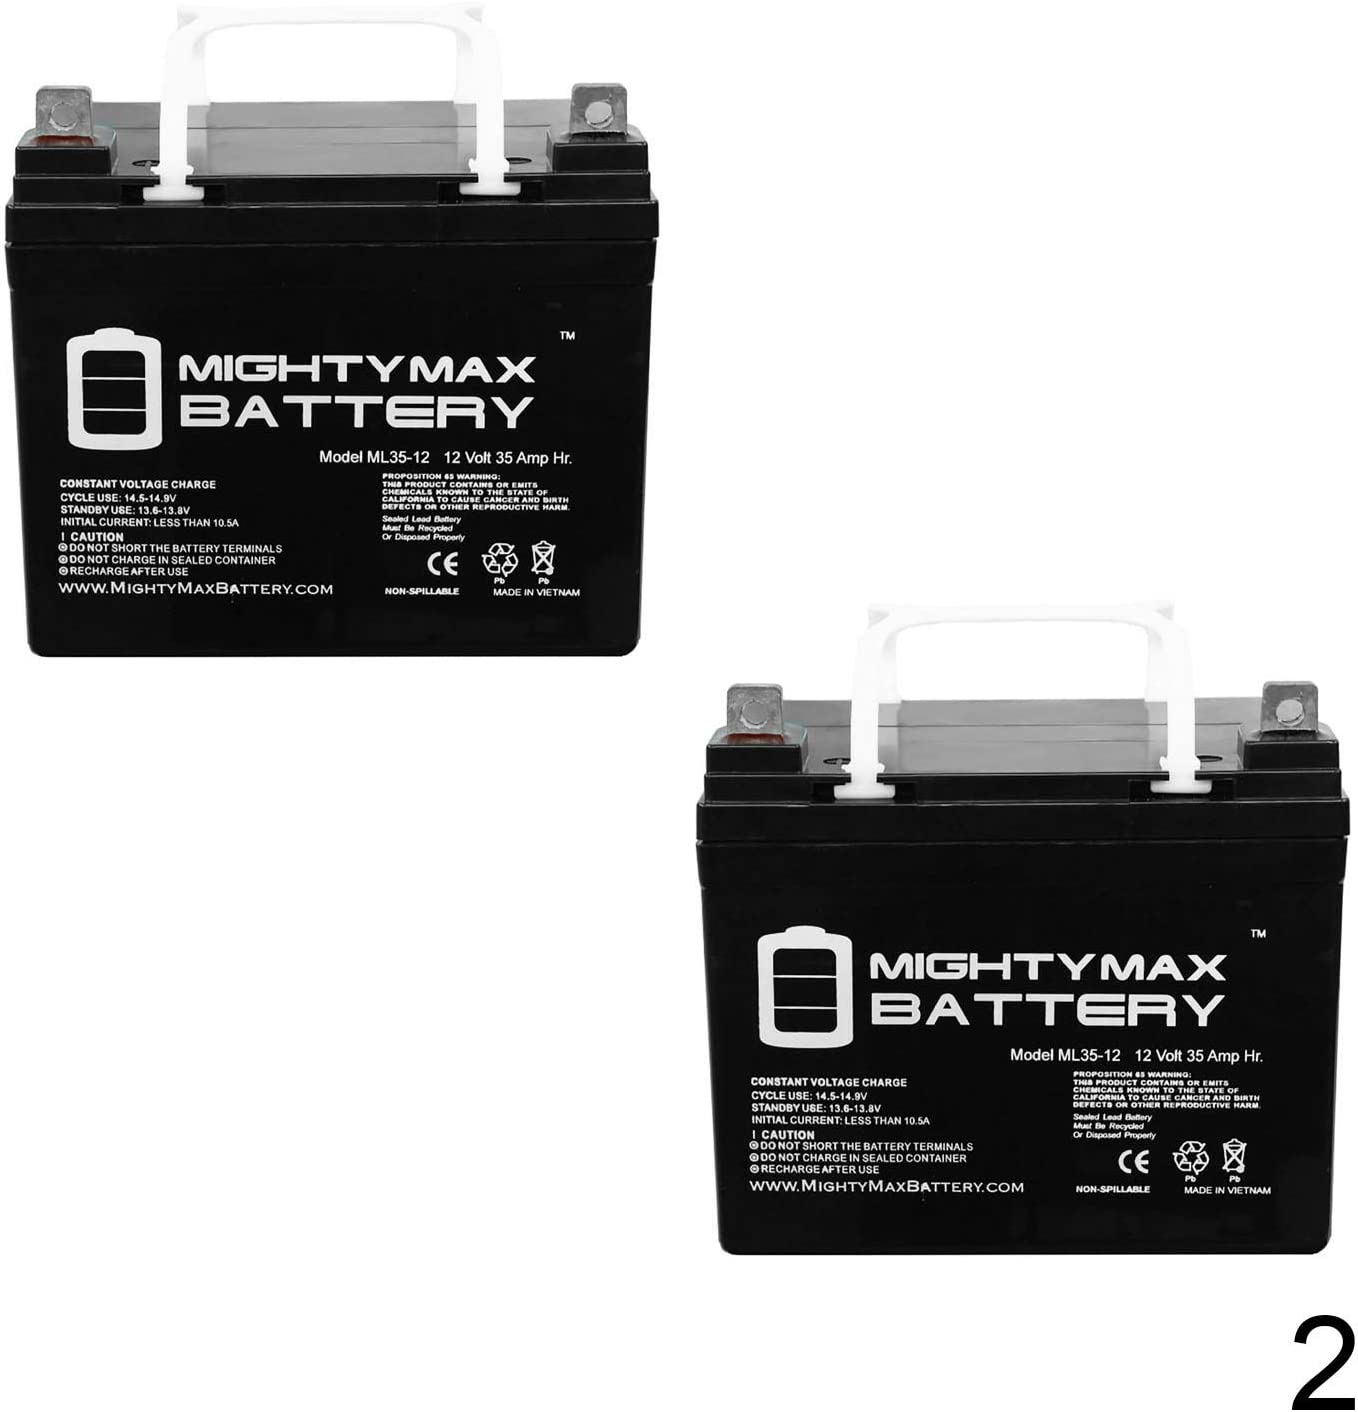 Mighty Max Battery ML35-12 - 12 Volt 35 AH SLA Battery - Pack of 2 Brand Product